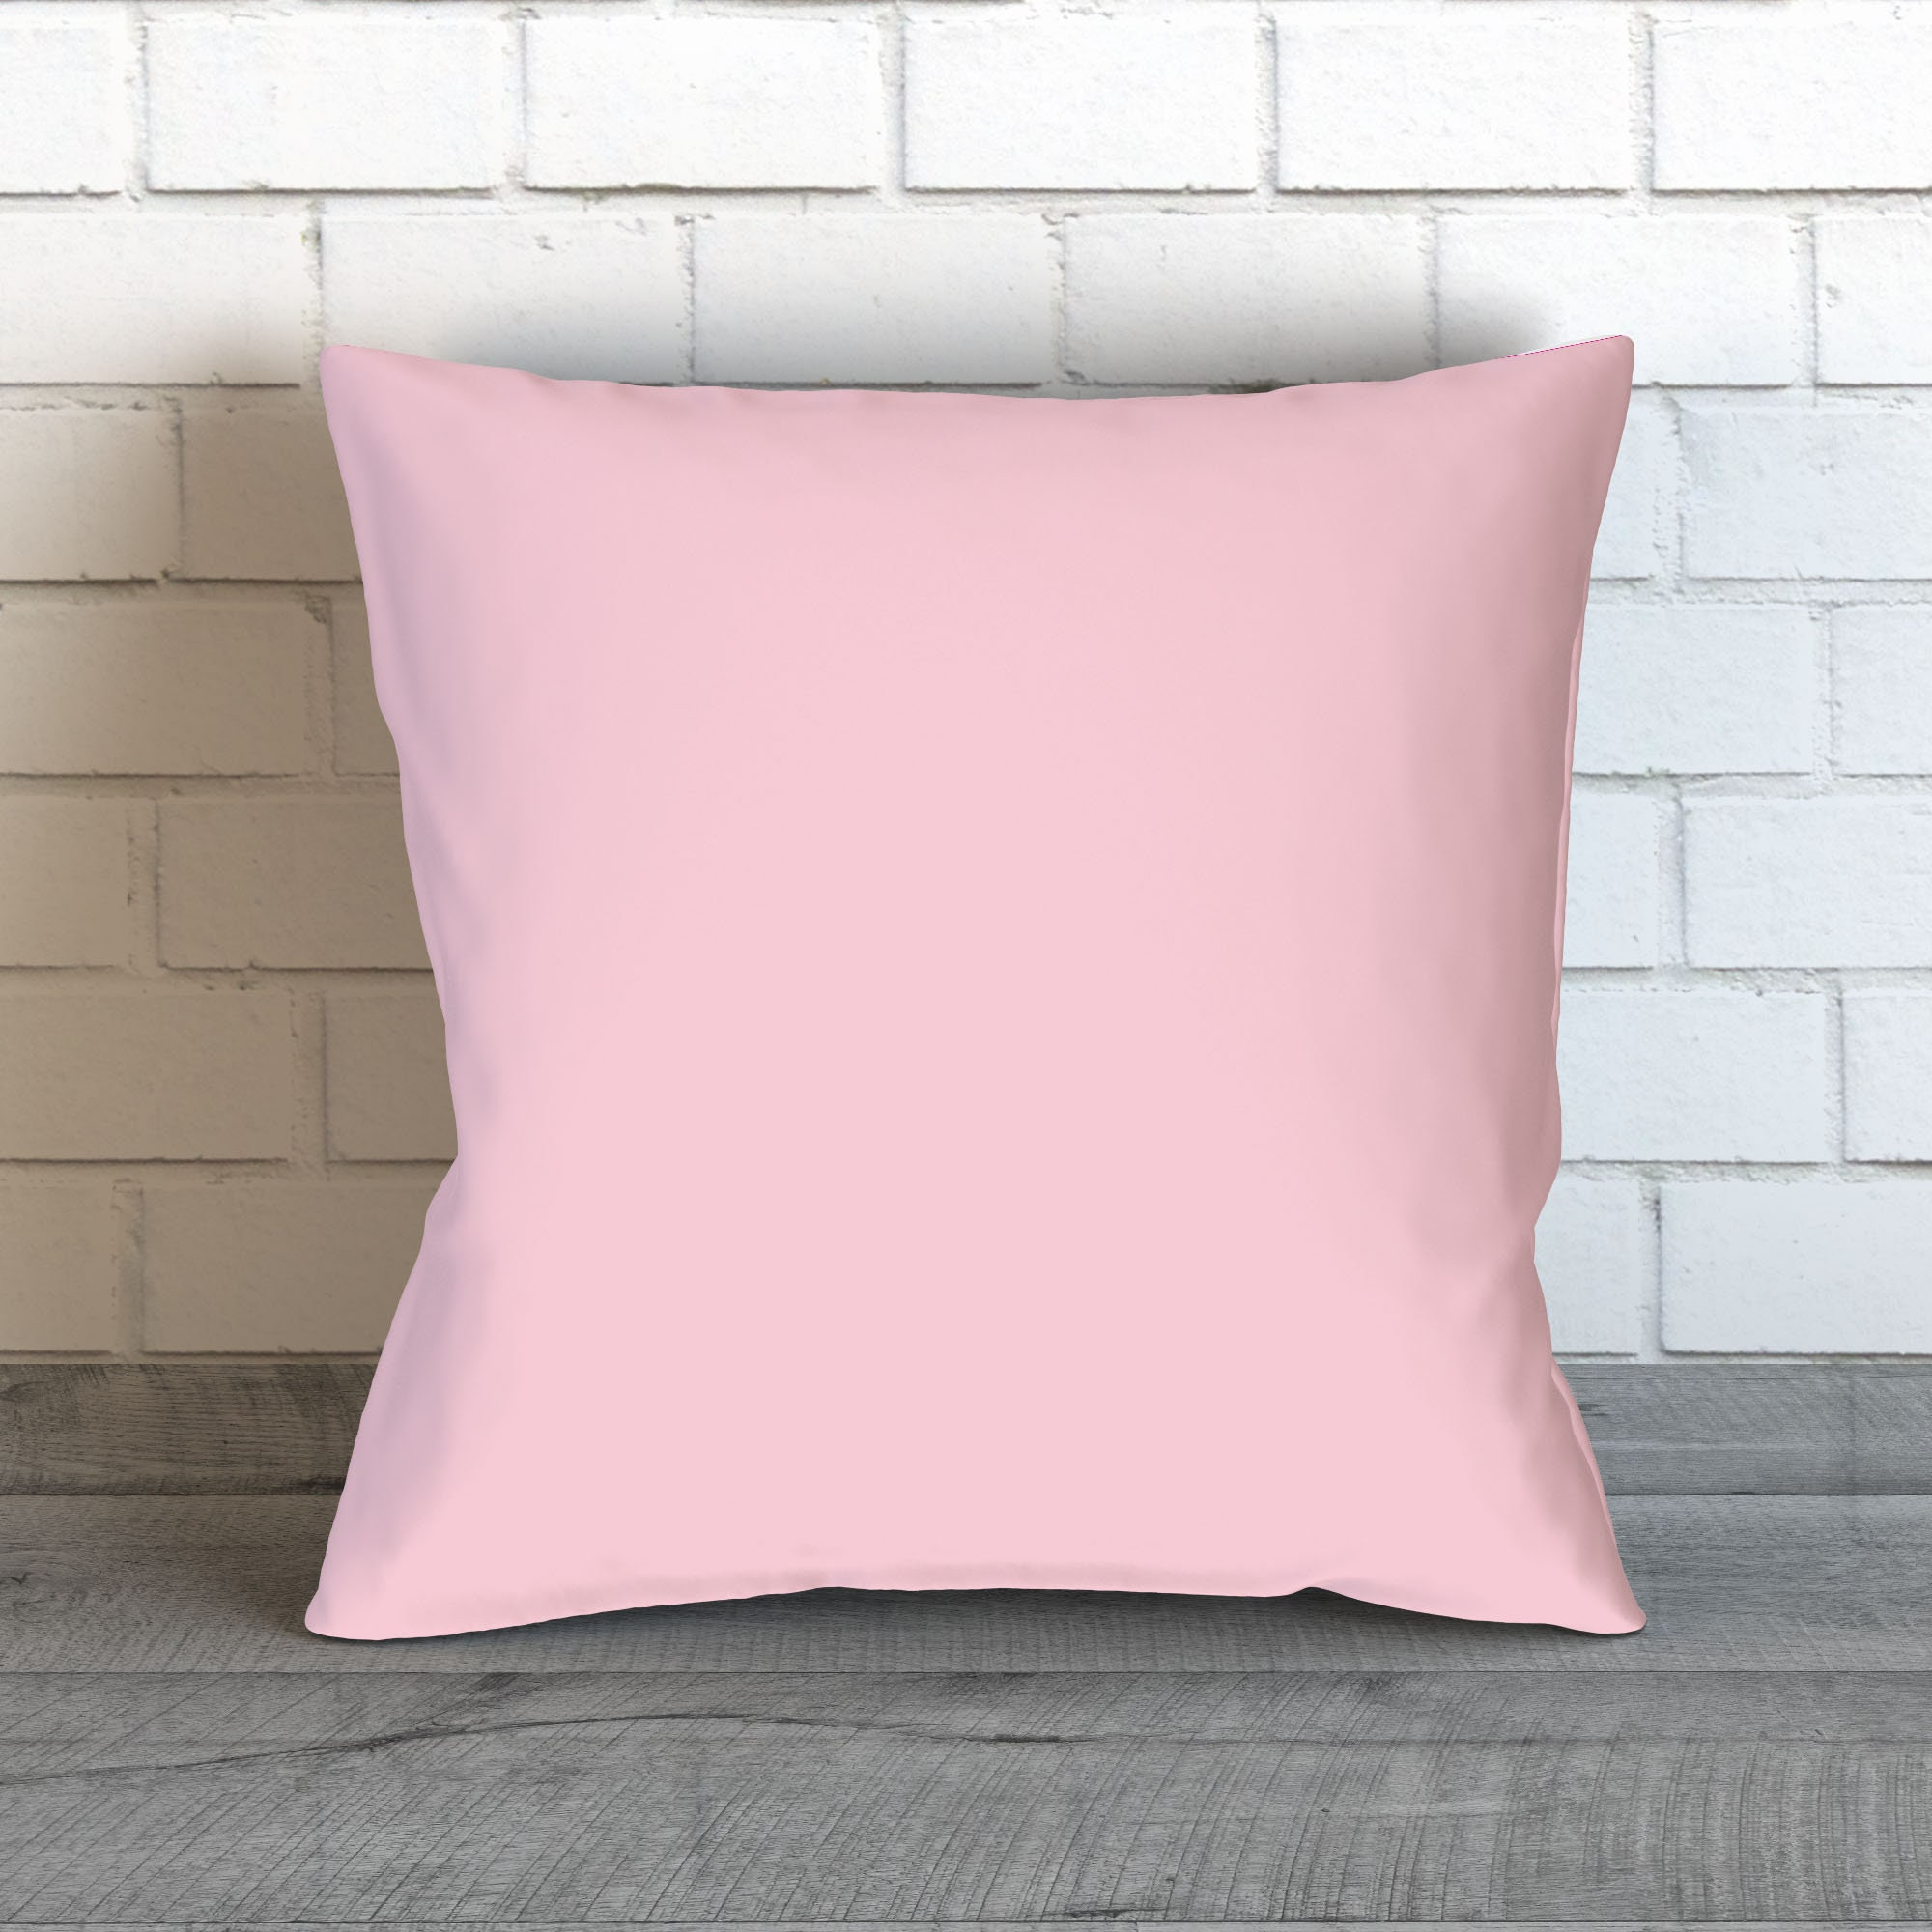 pillows snag pillow a look this is blush and pale wino bedroom pink throw grey mommy